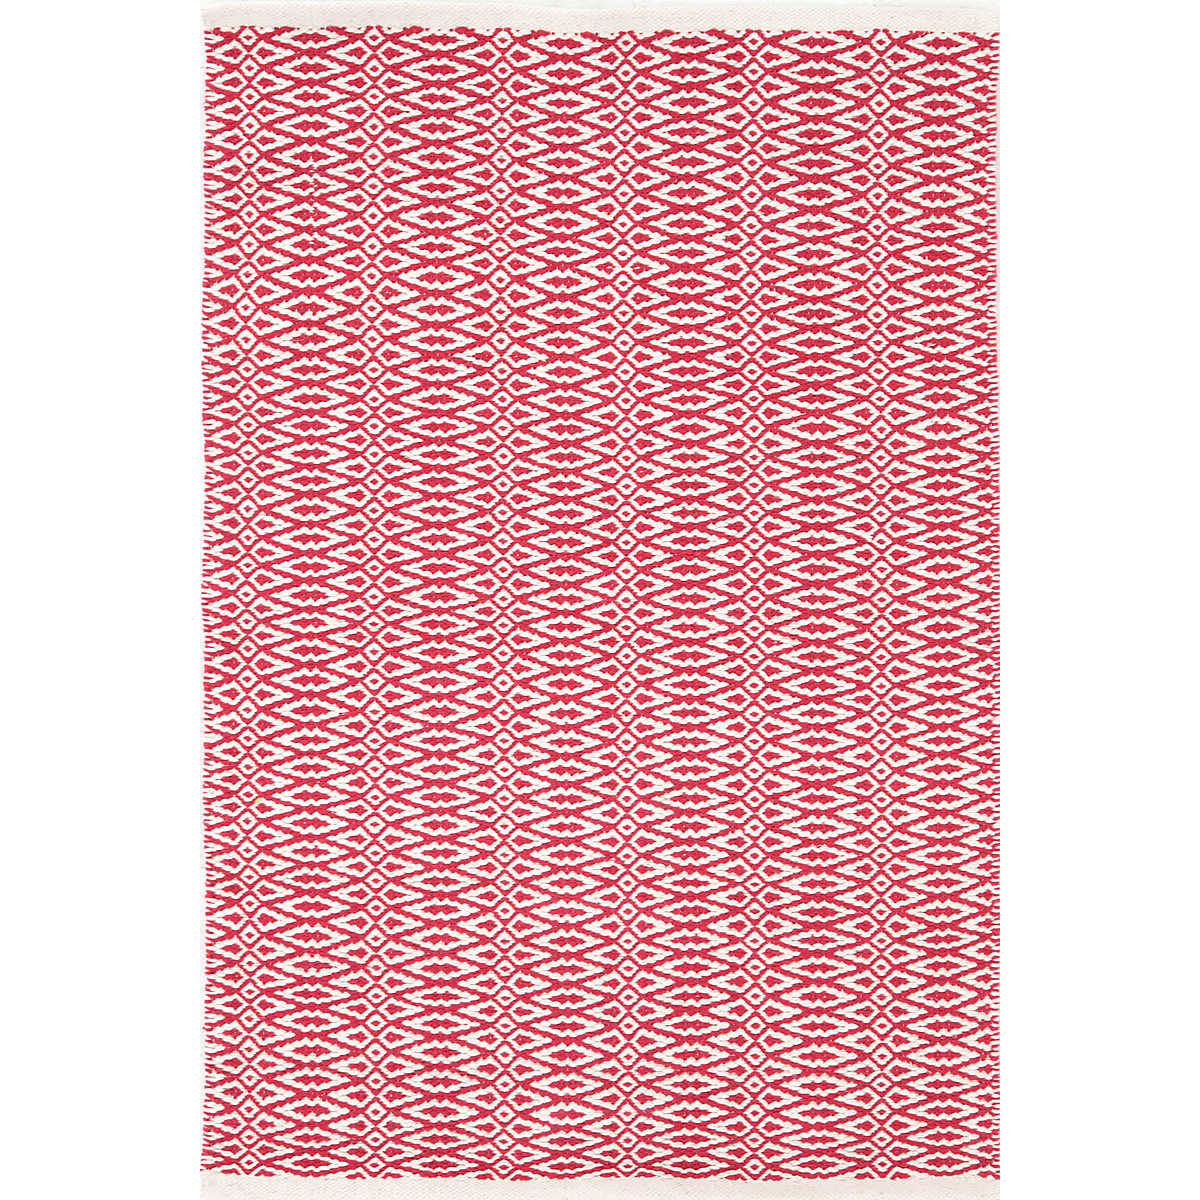 Bright red bathroom rugs - Fair Isle Red Ivory Cotton Woven Rug